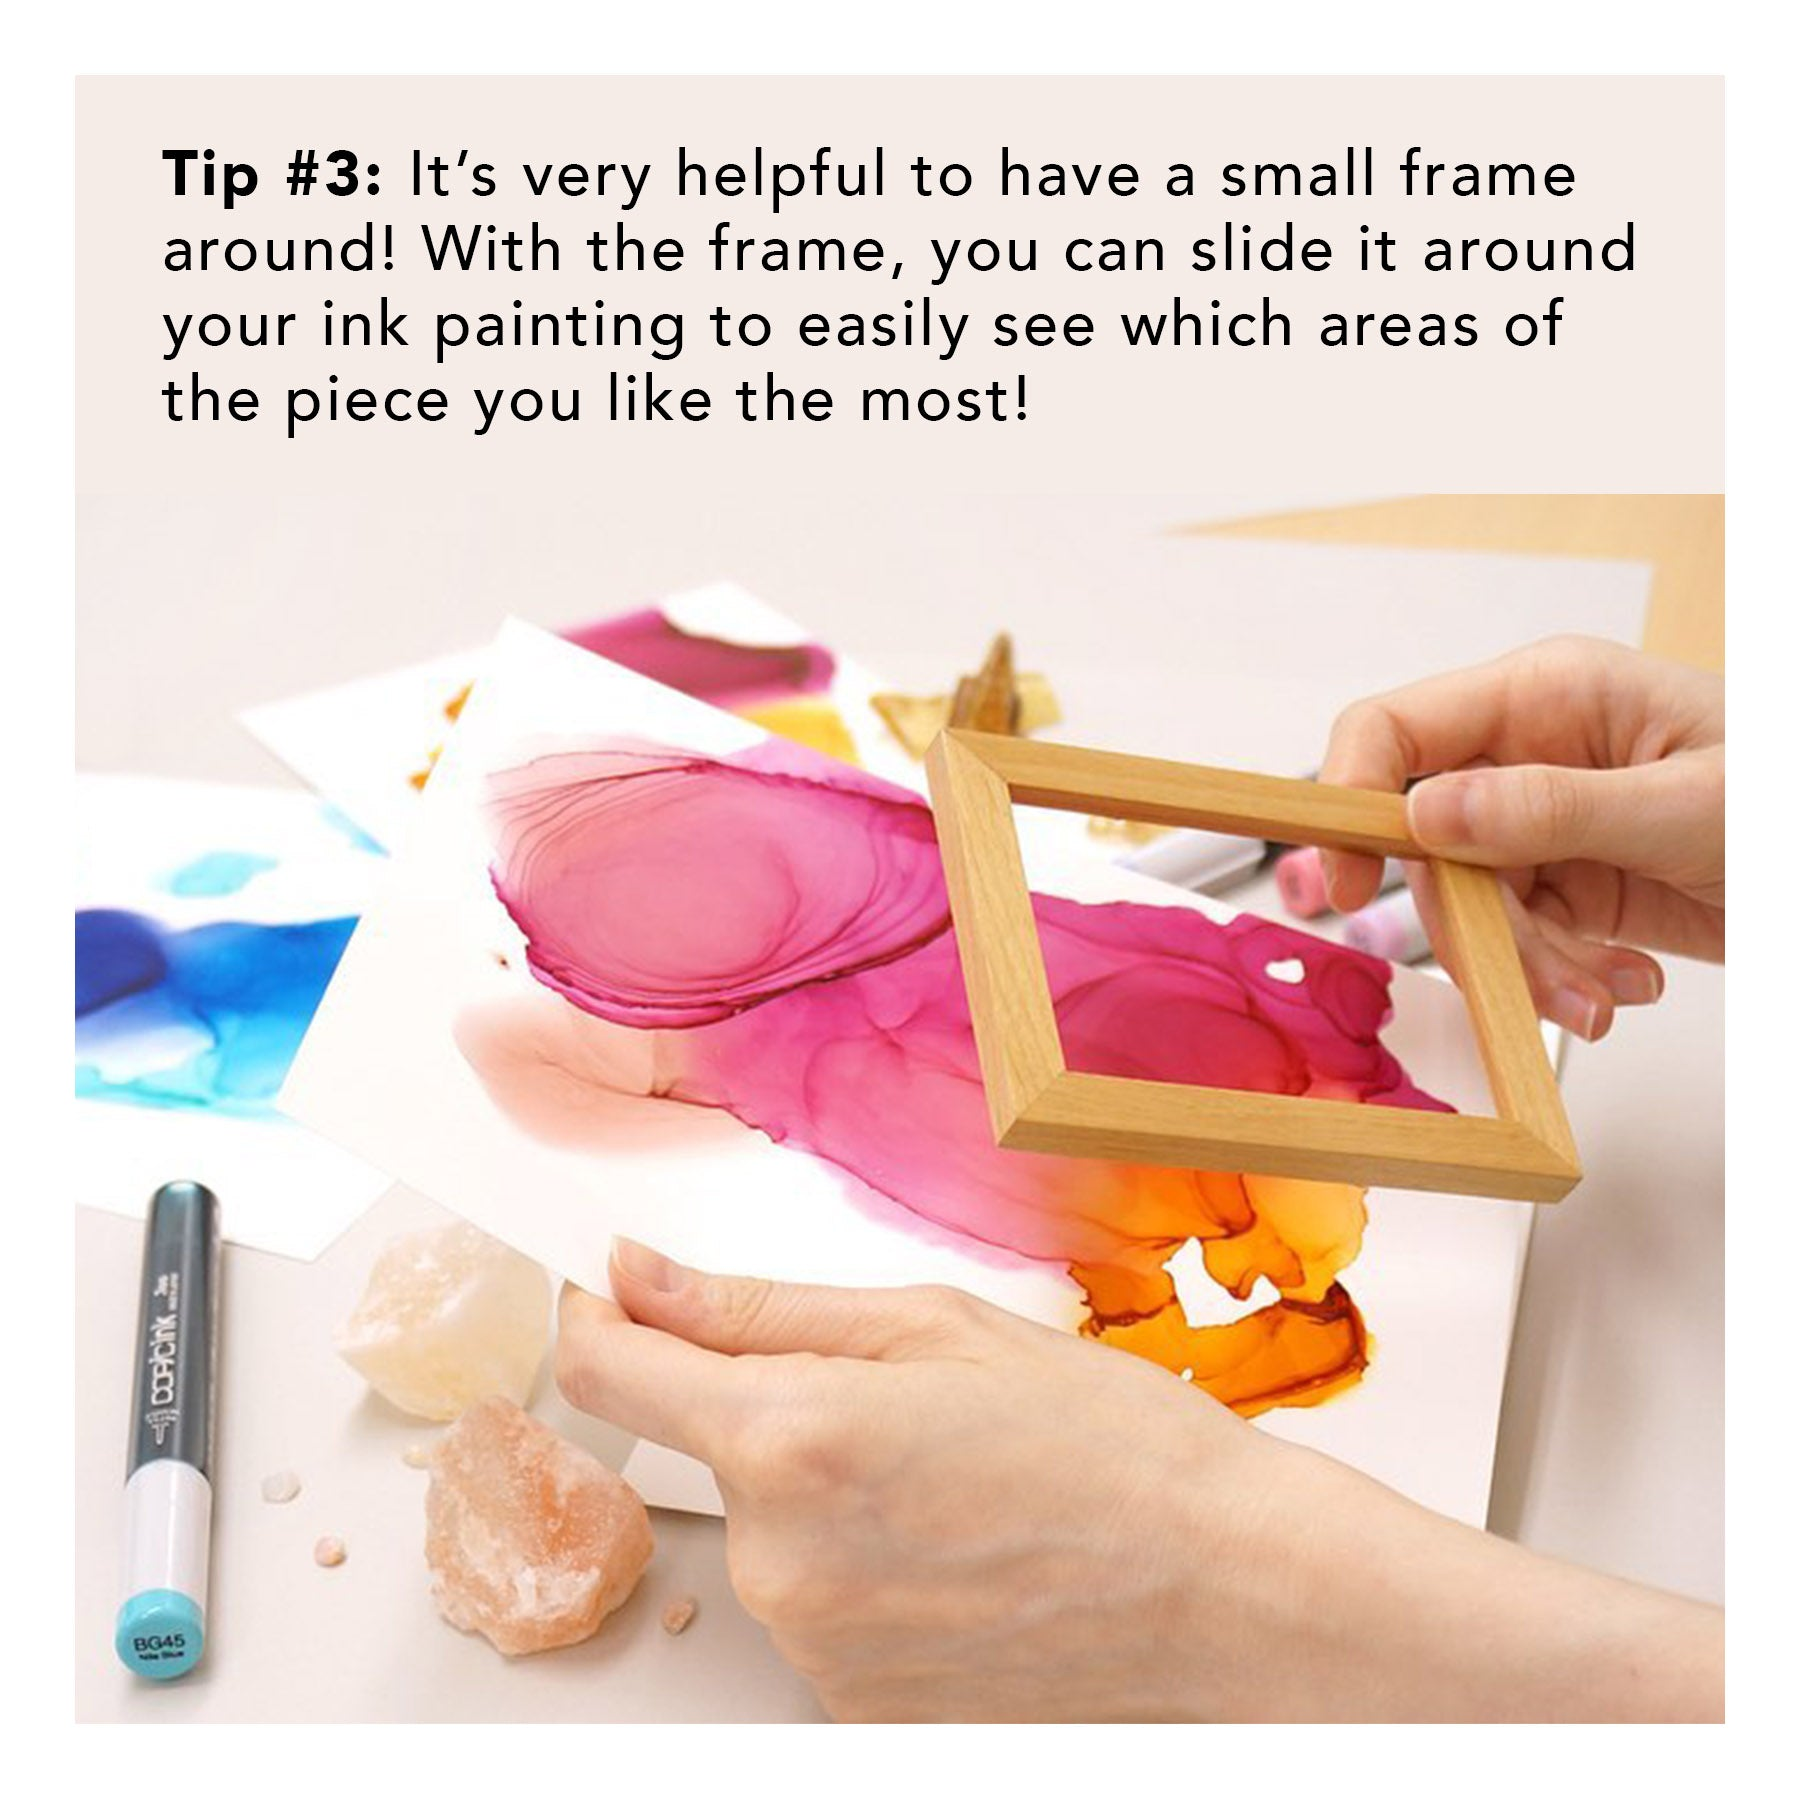 Tip no. 3: It's very helpful to have a small frame around!